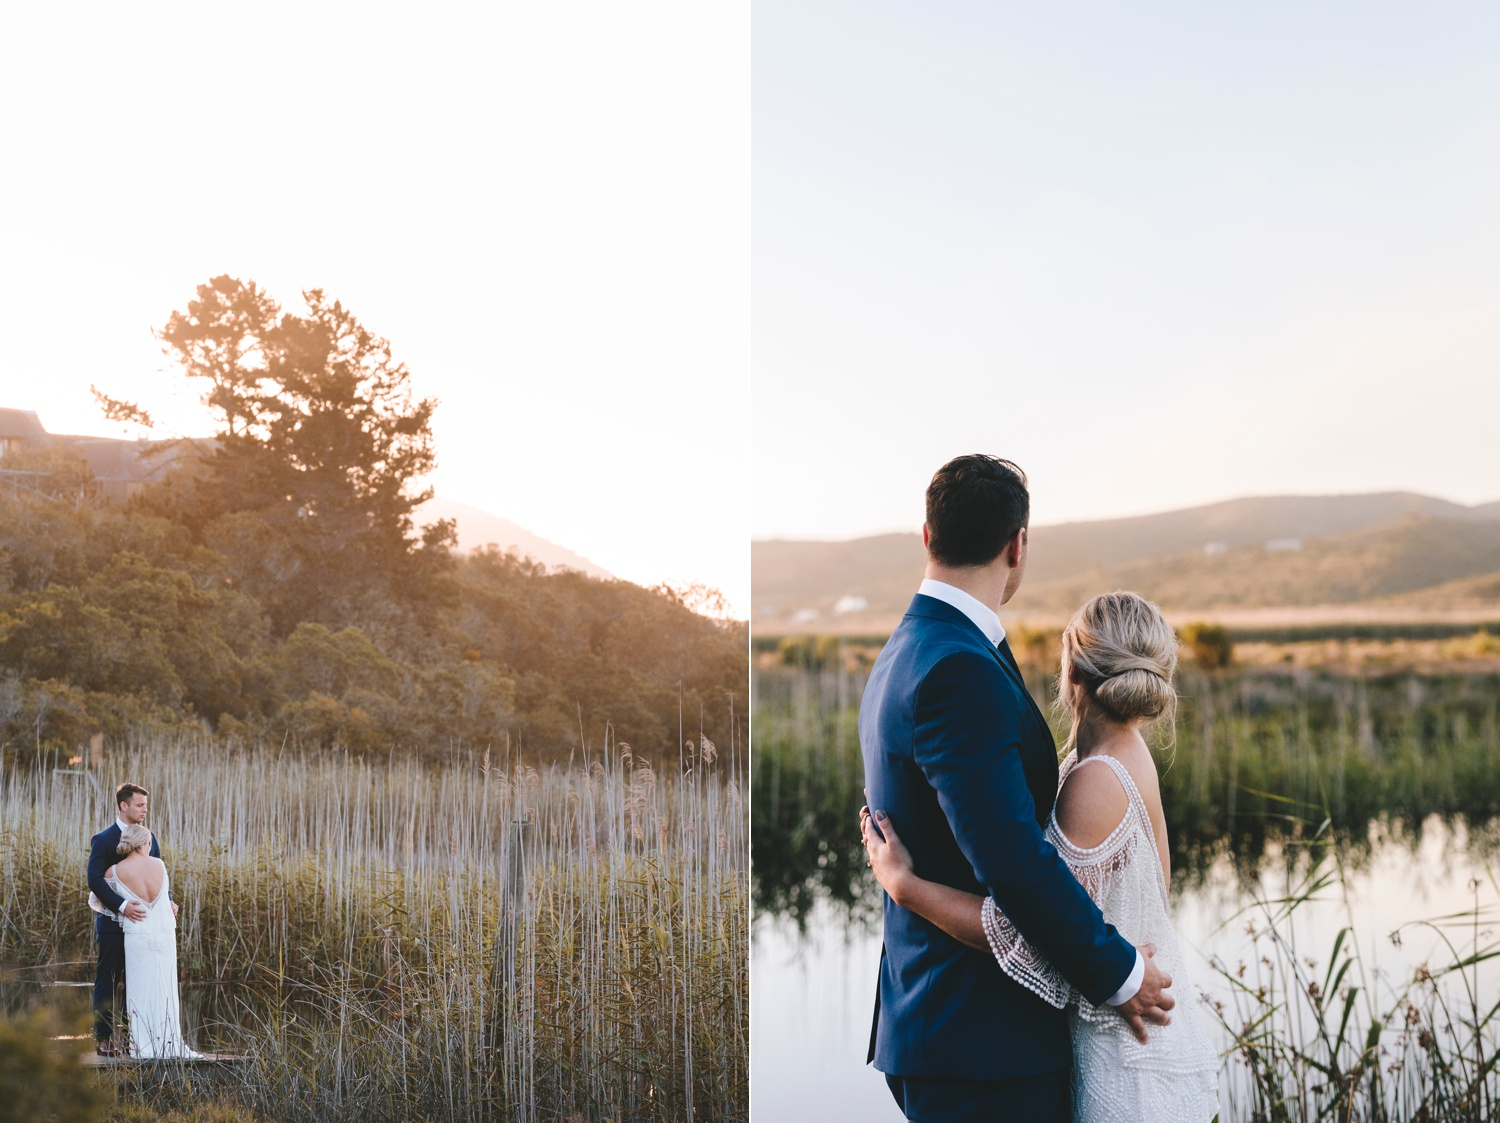 charlie_ray_photography_runaway_romance_elopement_emily_moon_plett_simple_boho_wedding_south_africa_bohemium_0103.jpg